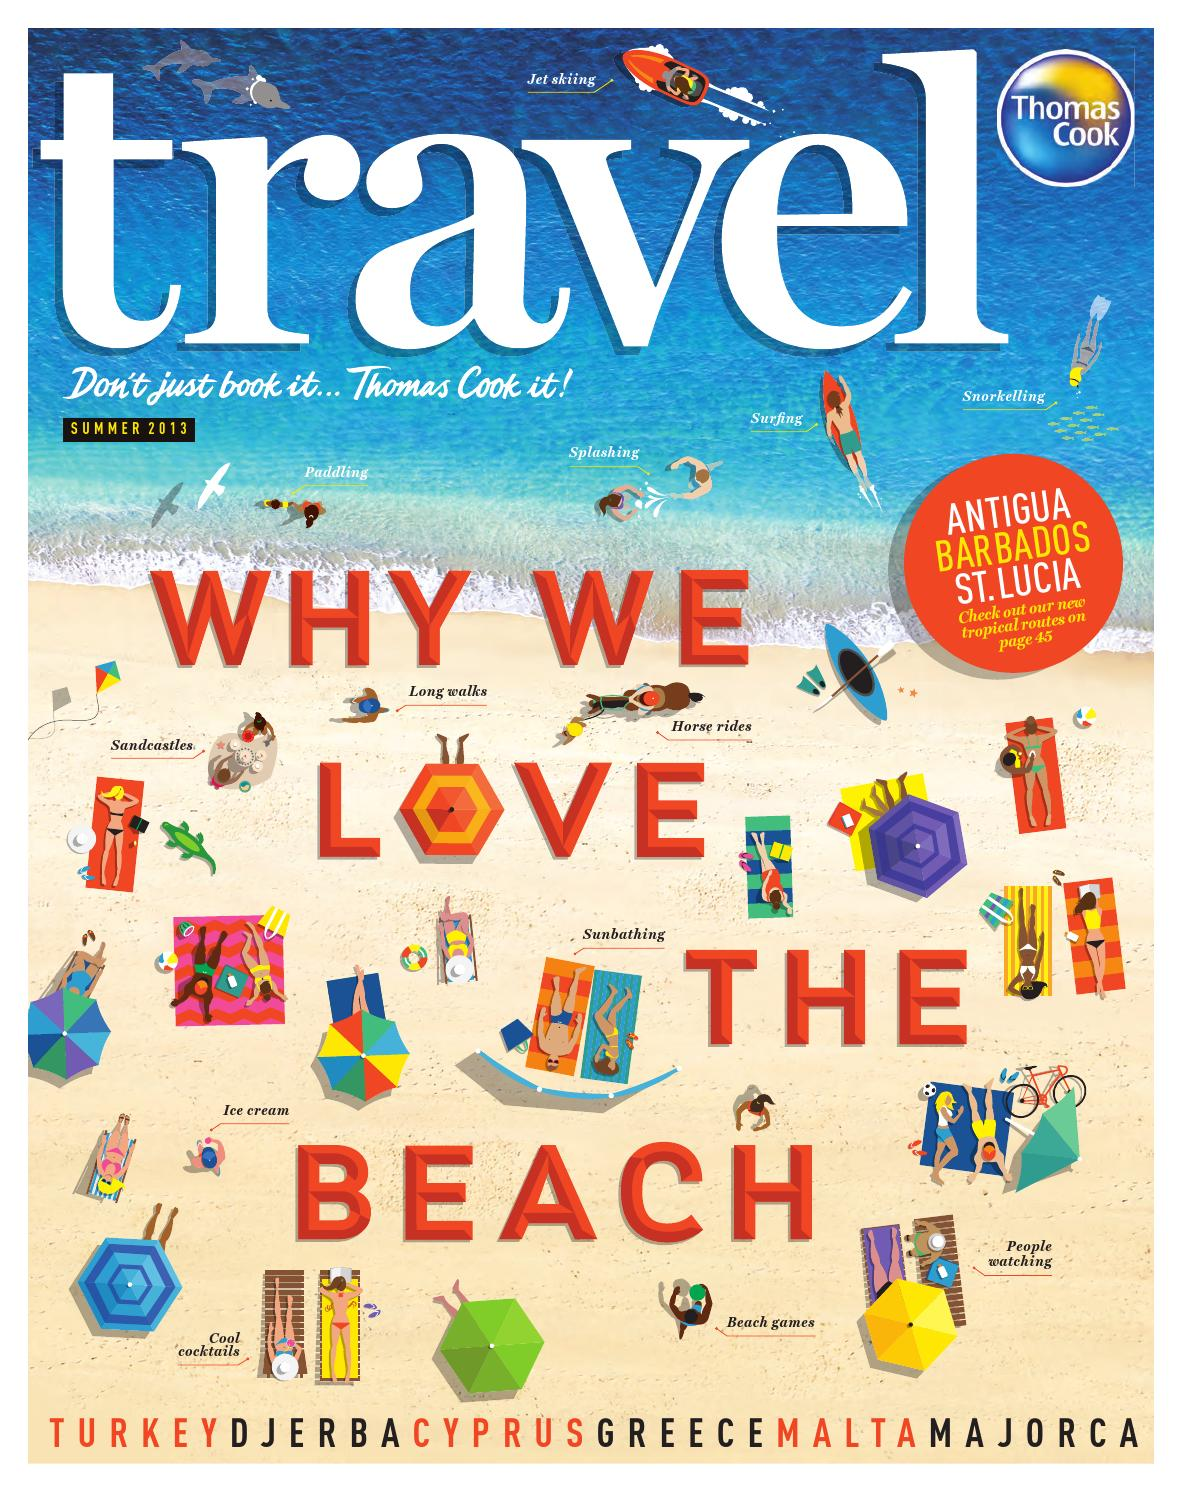 5c40223f46b1e Thomas Cook Travel - Summer 2013 by Bookletia - issuu